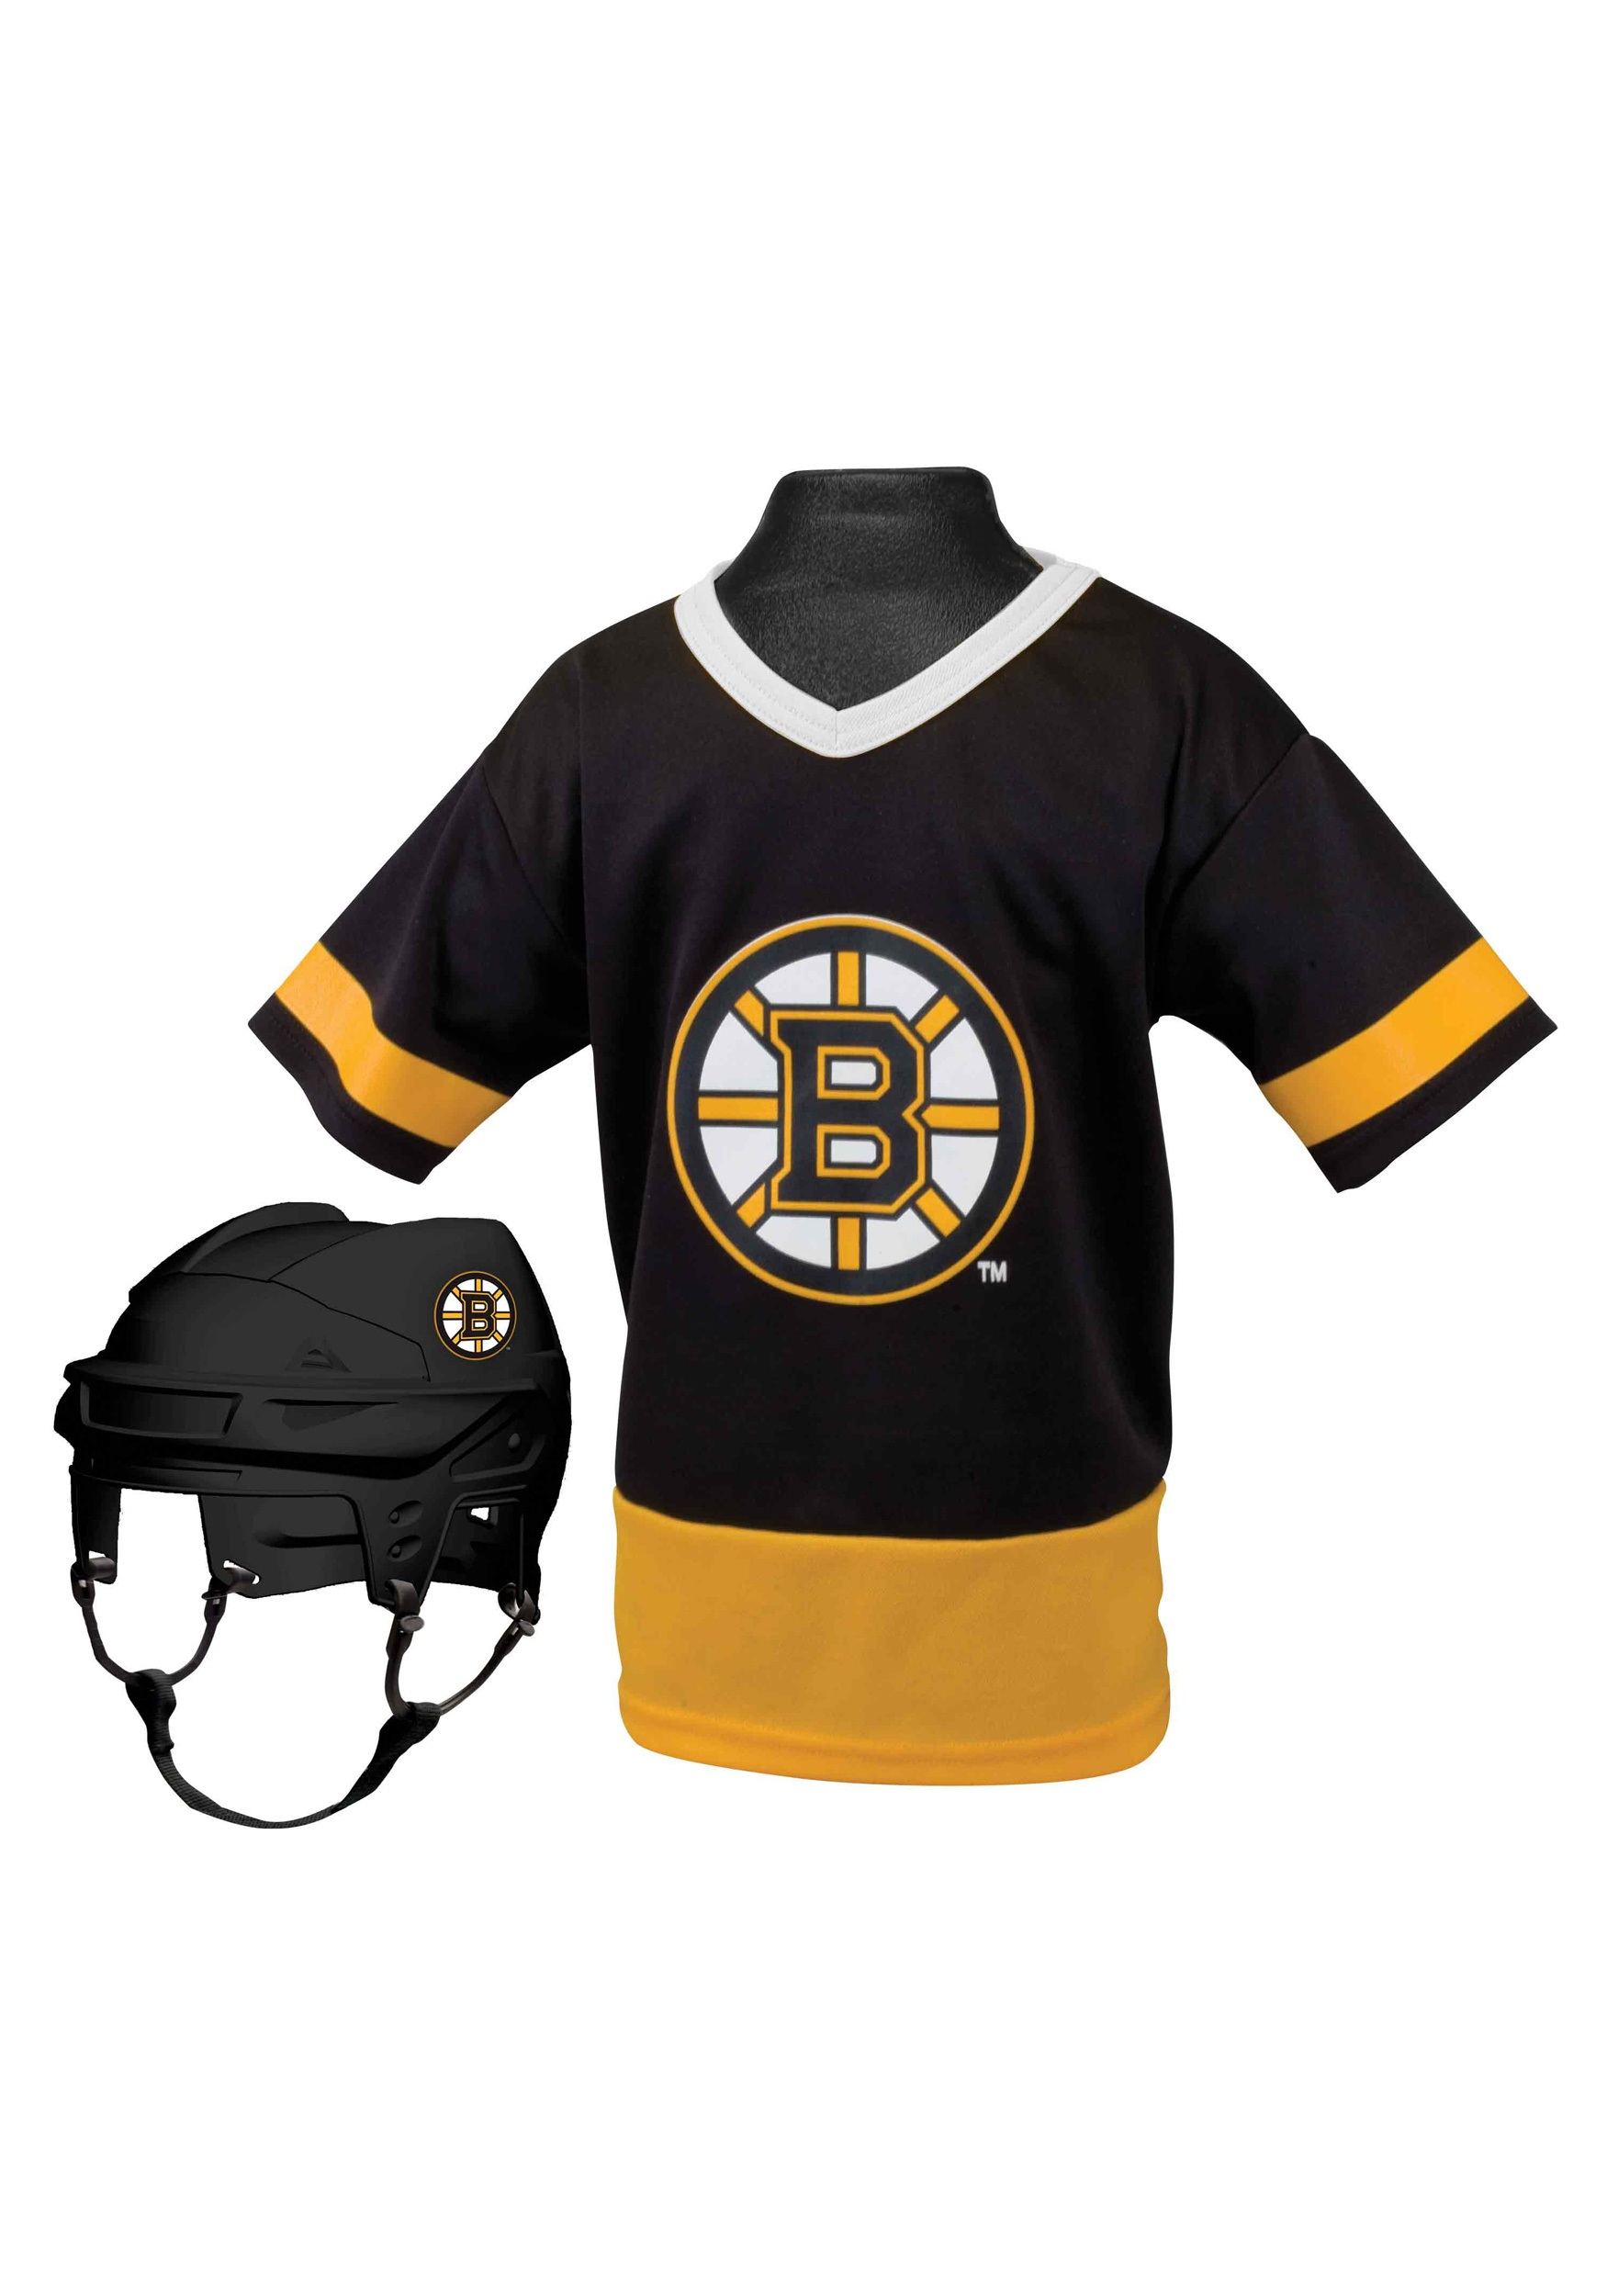 1e00e0e5968 Kids NHL Boston Bruins Uniform Costume Set